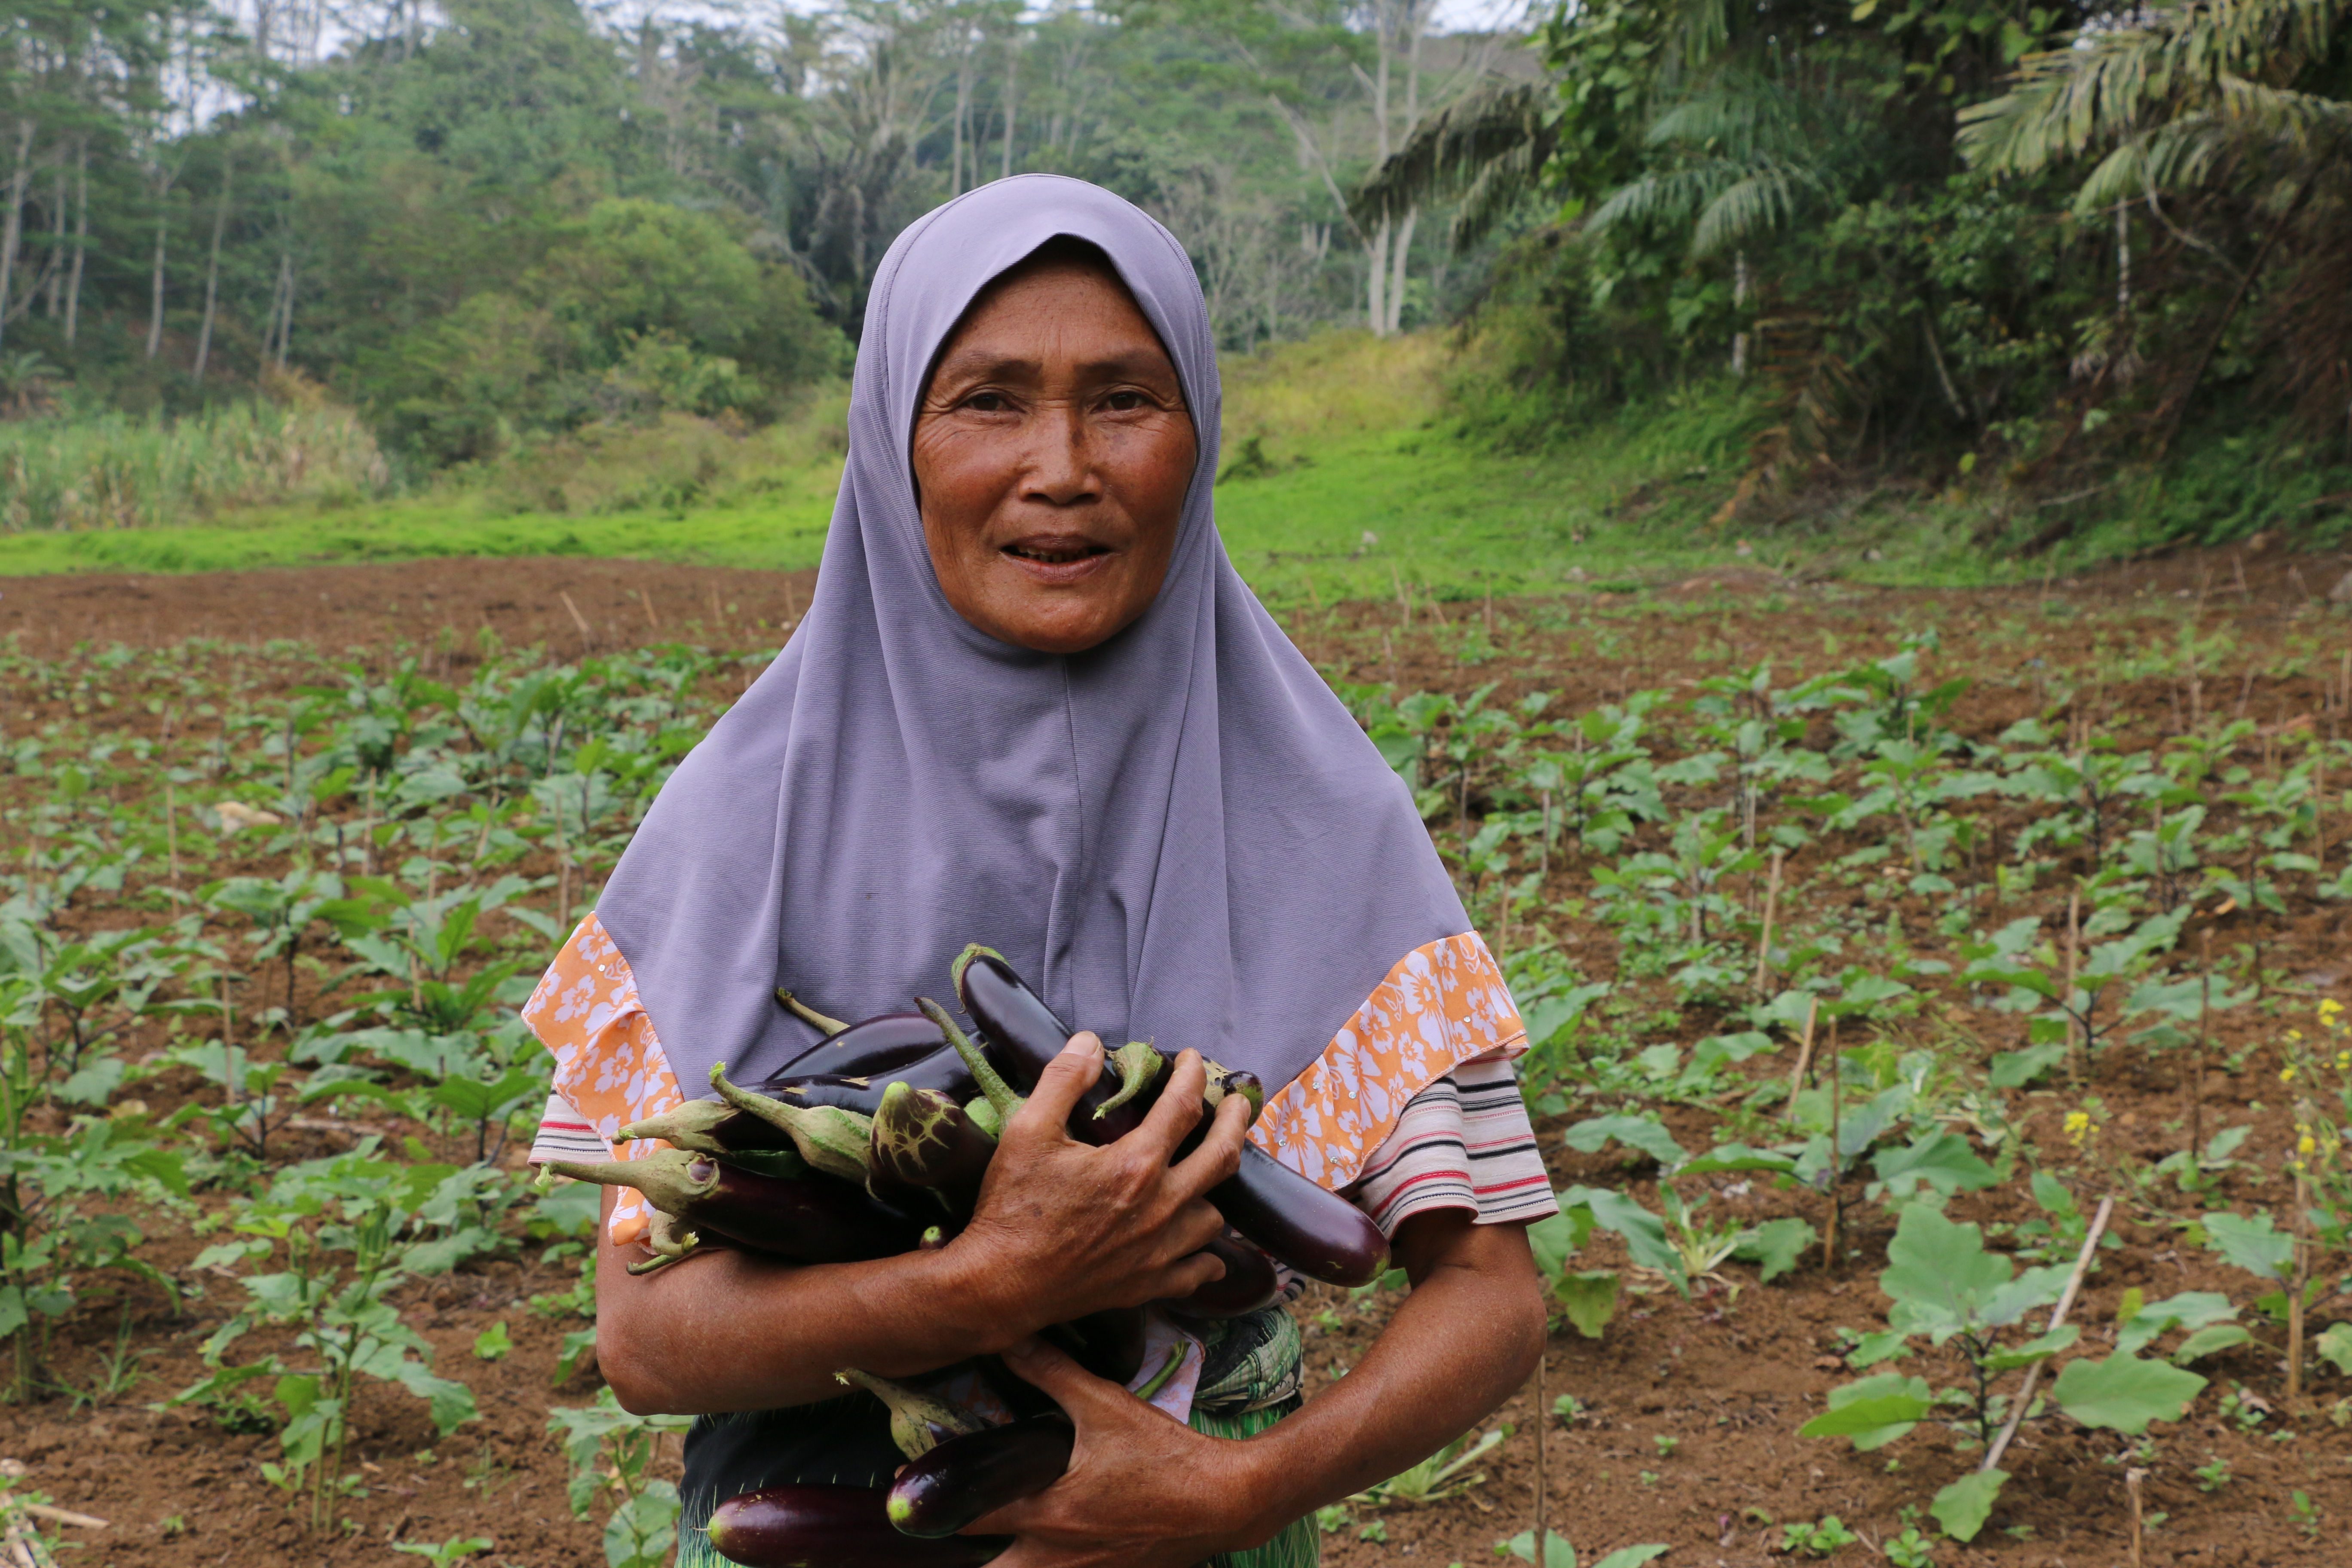 Mairah, a beneficiary to WFP's cash-based assistance programme in Marawi